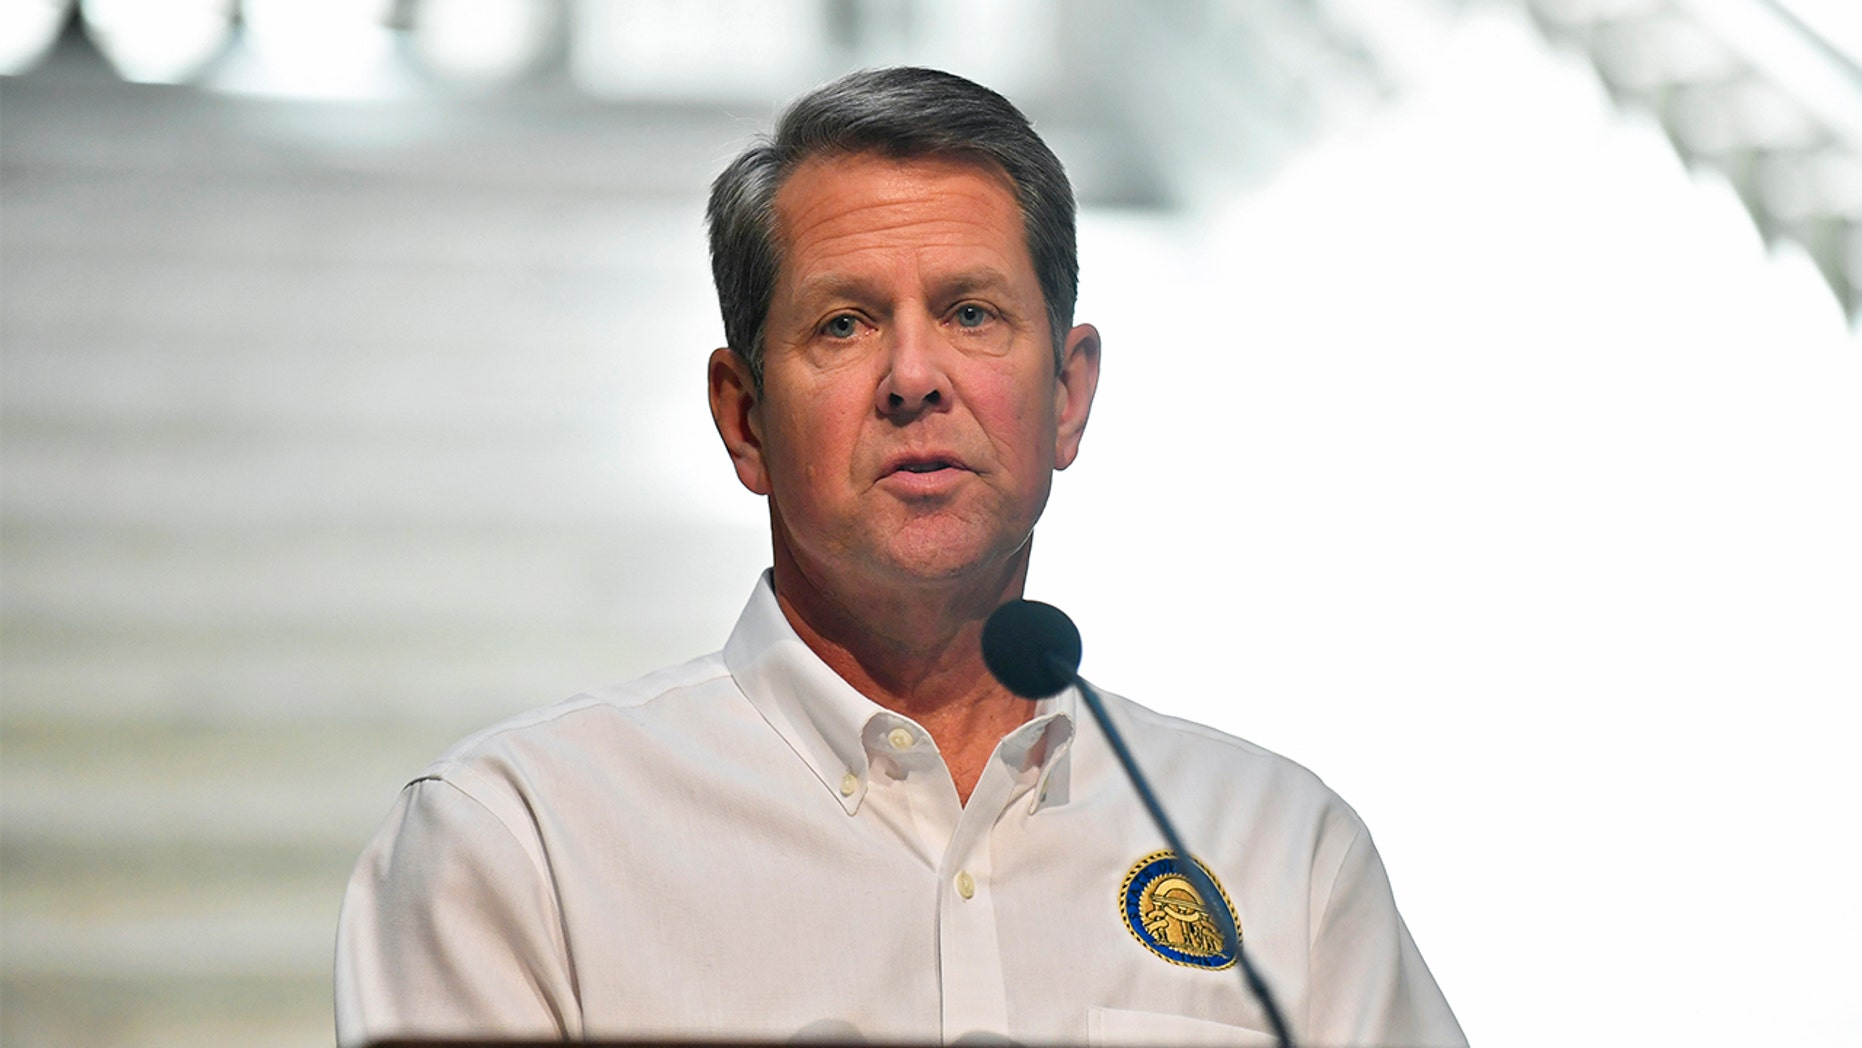 Georgia Gov. Kemp signs new law to strip human traffickers of commercial driver's licenses for life